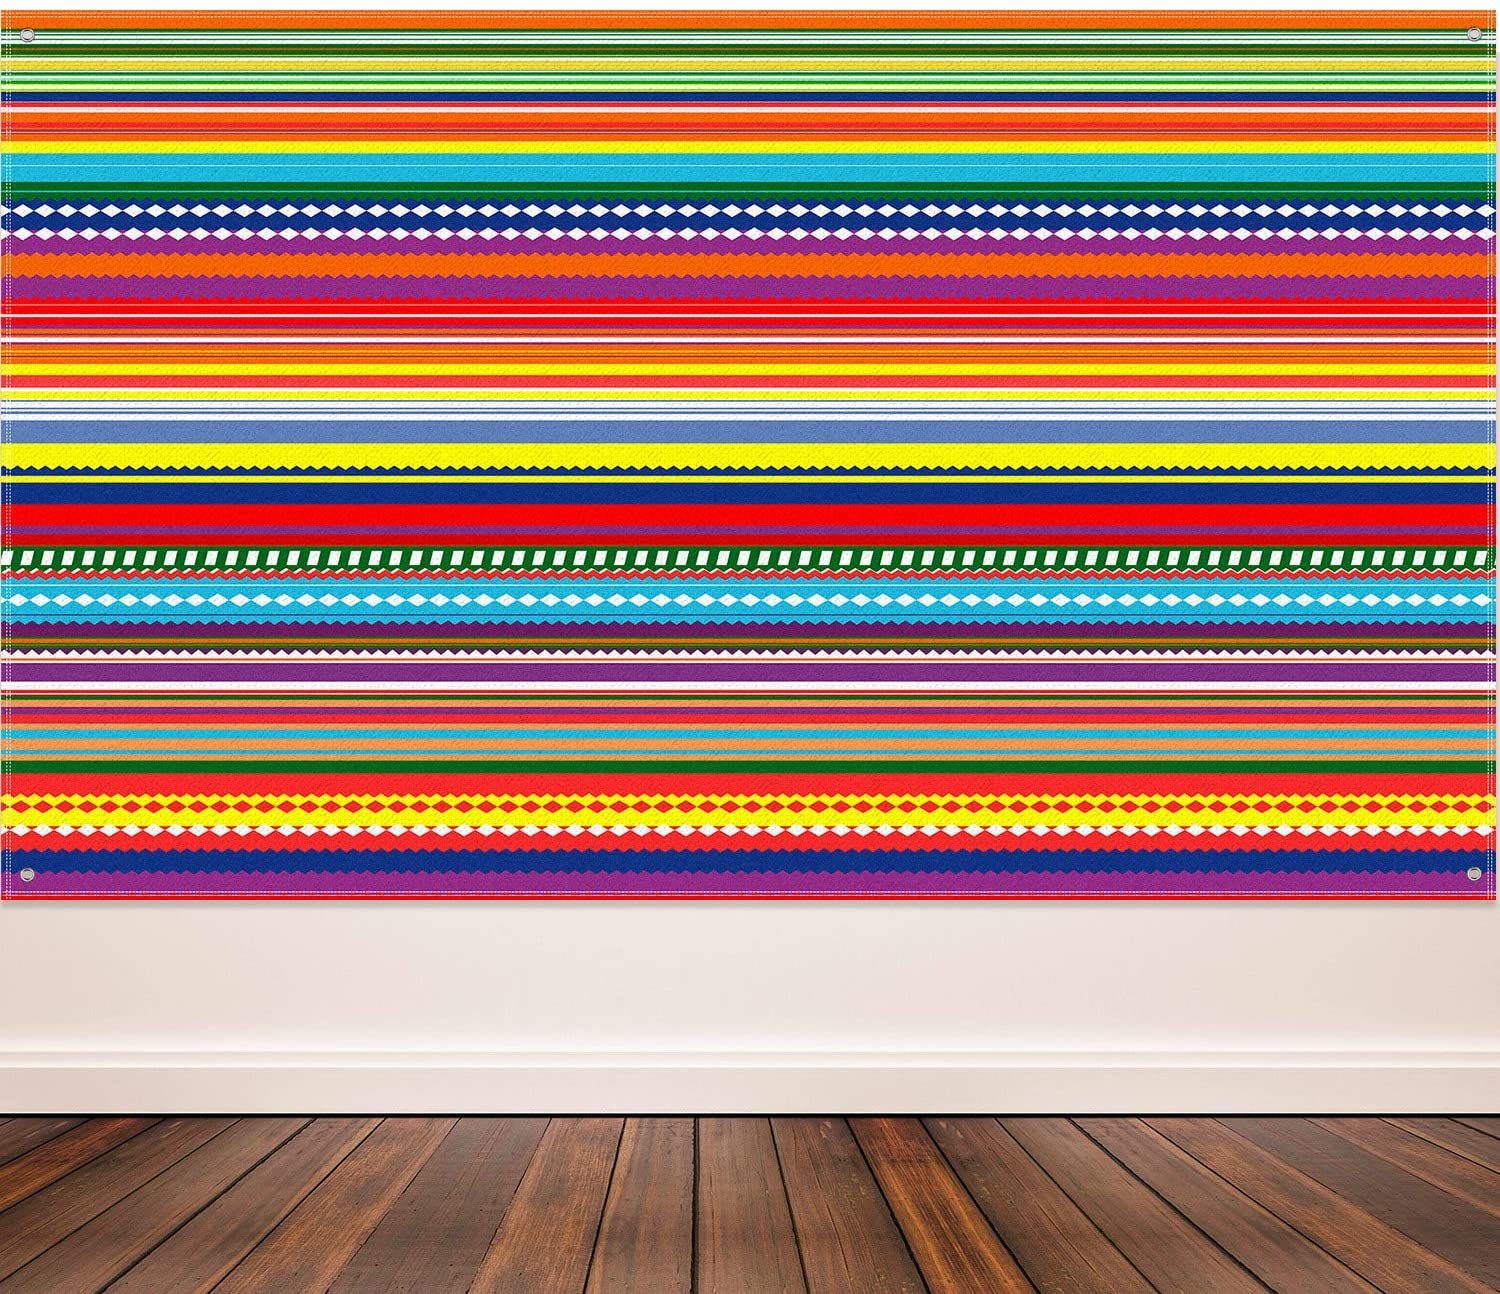 Color Fiesta Theme Party Decoration Supplies Extra Large Stripes Backdrop Fabric Mexican Festival Photography Background for Fiesta Theme Decoration, Cactus Photo Backdrop Banner, 72.8 x 43.3 Inch